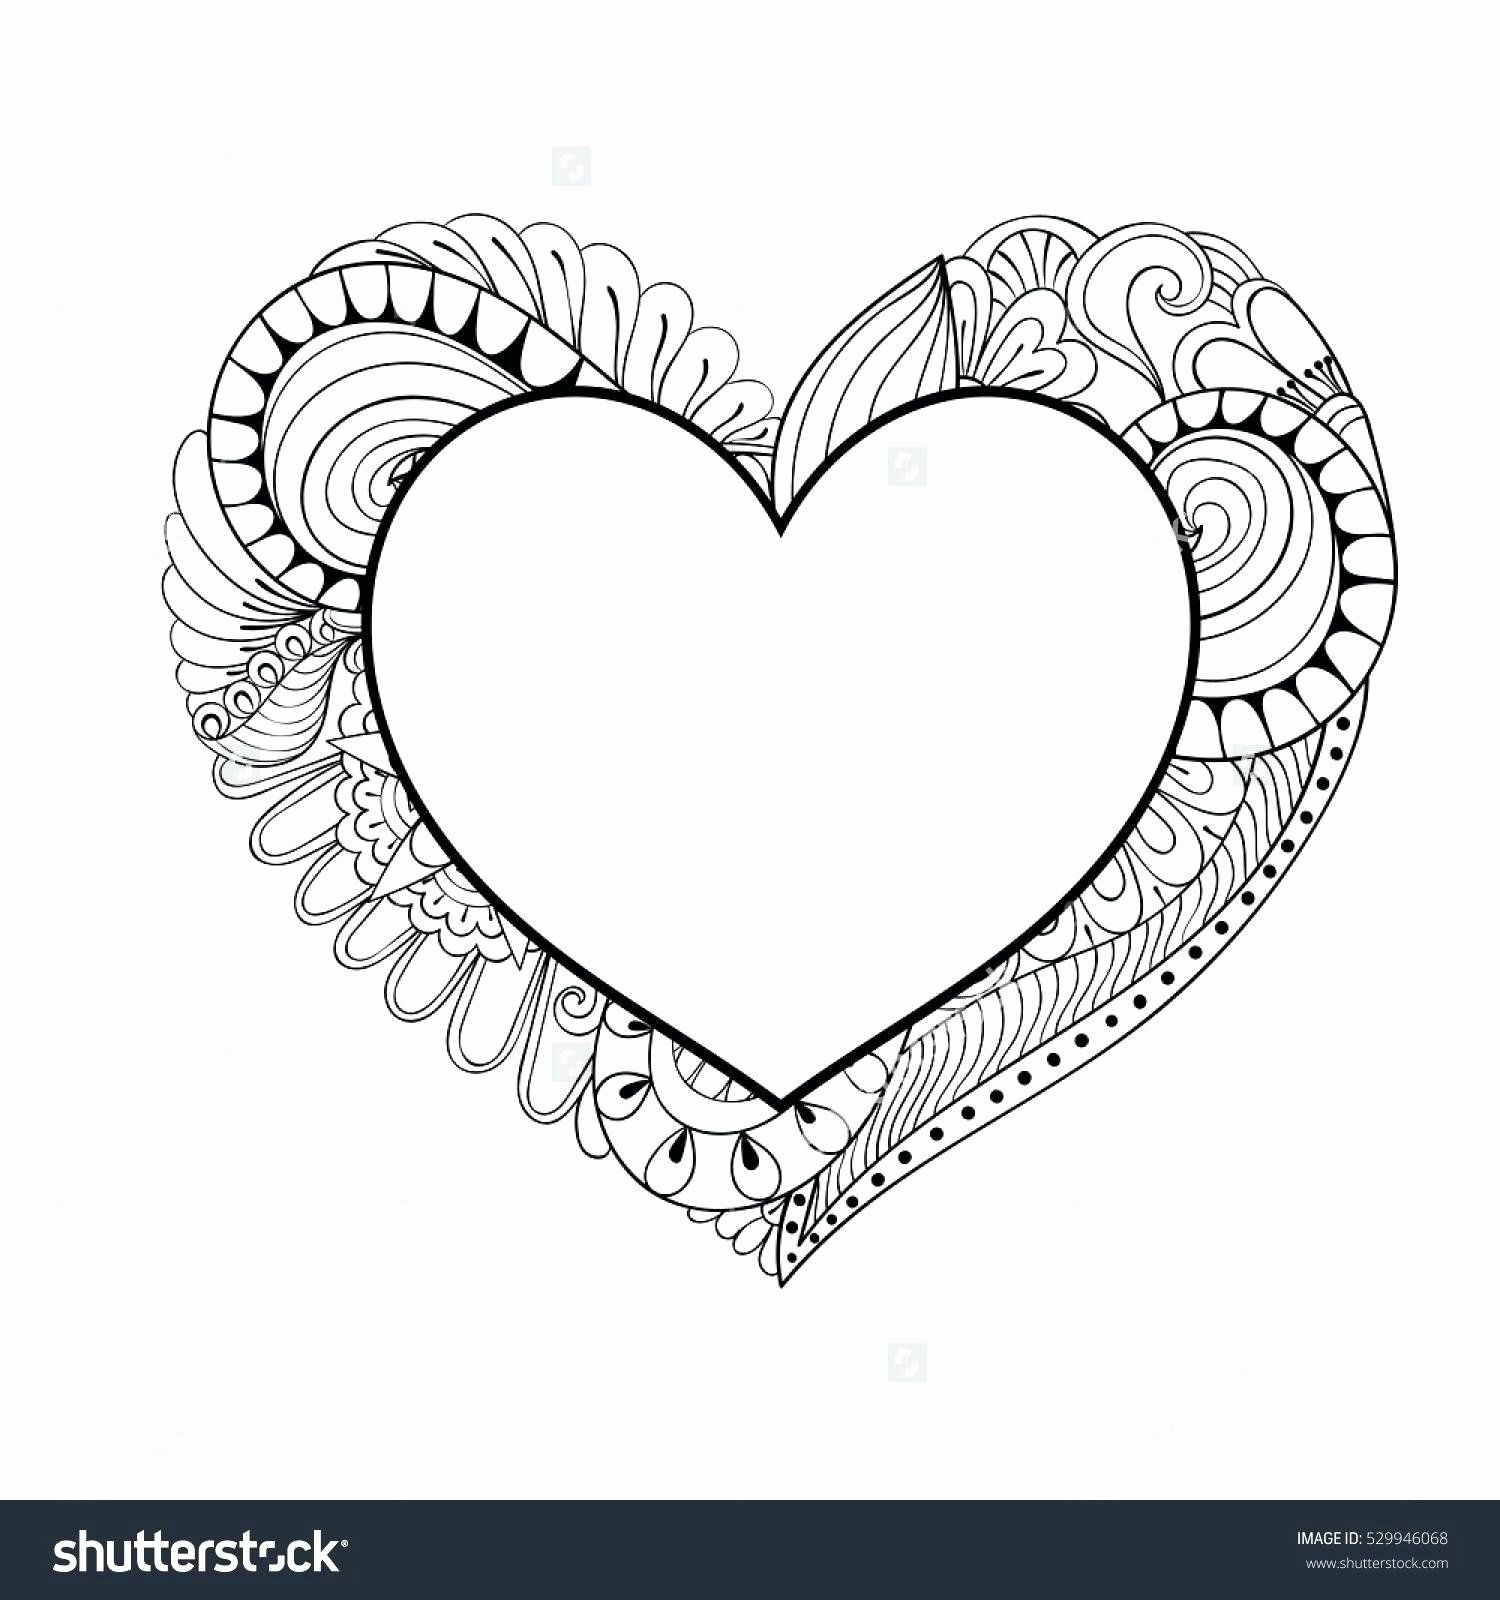 - Conversation Heart Coloring Page Di 2020